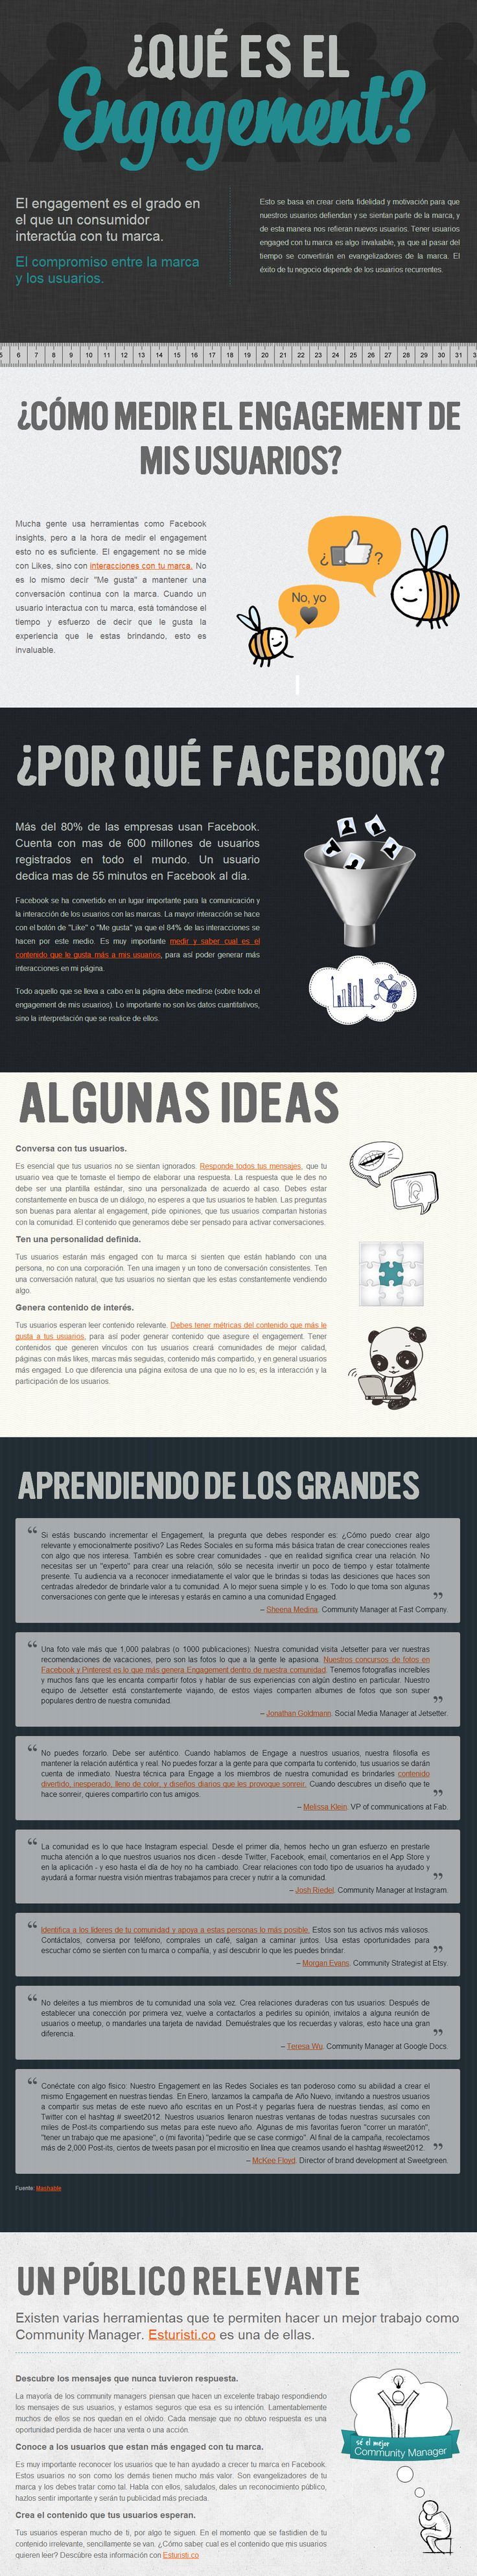 #Infografia #CommunityManager ¿Qué es el Engagement? #TAVnews